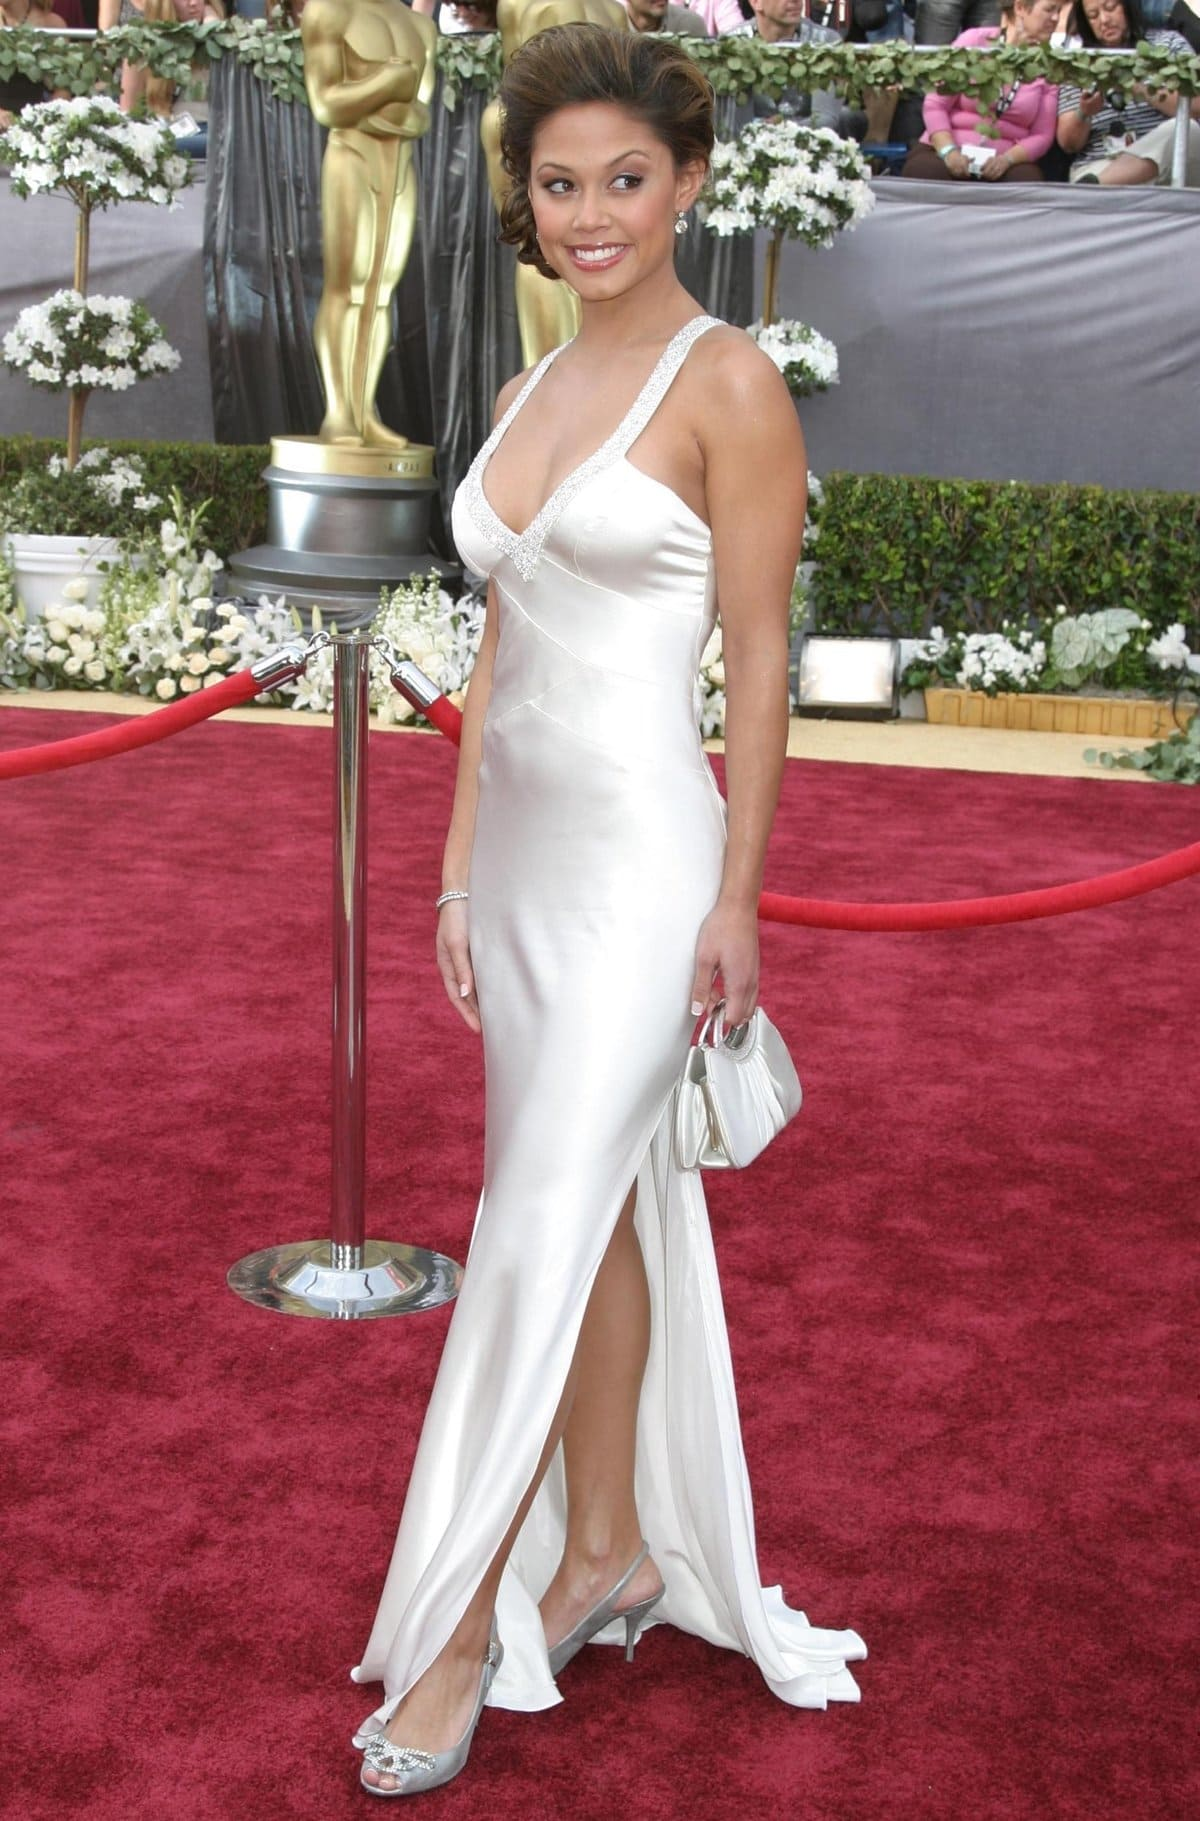 Television host Vanessa Minnillo arrives at the 78th annual Academy Awards